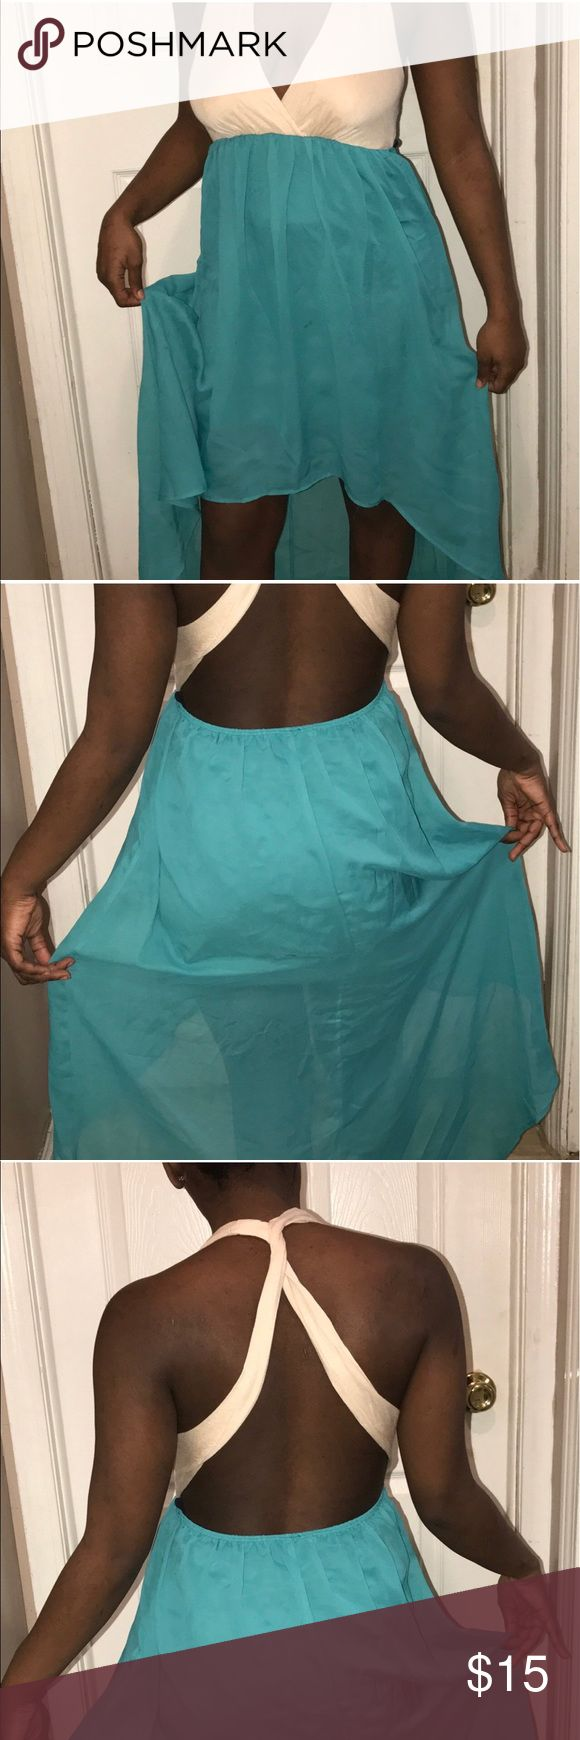 Maxi dress ✨✨ Attention ladies ✨✨ this a beautiful Mezzanine tan and turquoise maxi dress. The lower part of the dress is sheer with a half slip underneath . 💃🏿💃🏿Worn only once! #maxidress #maxi #women Dresses Maxi